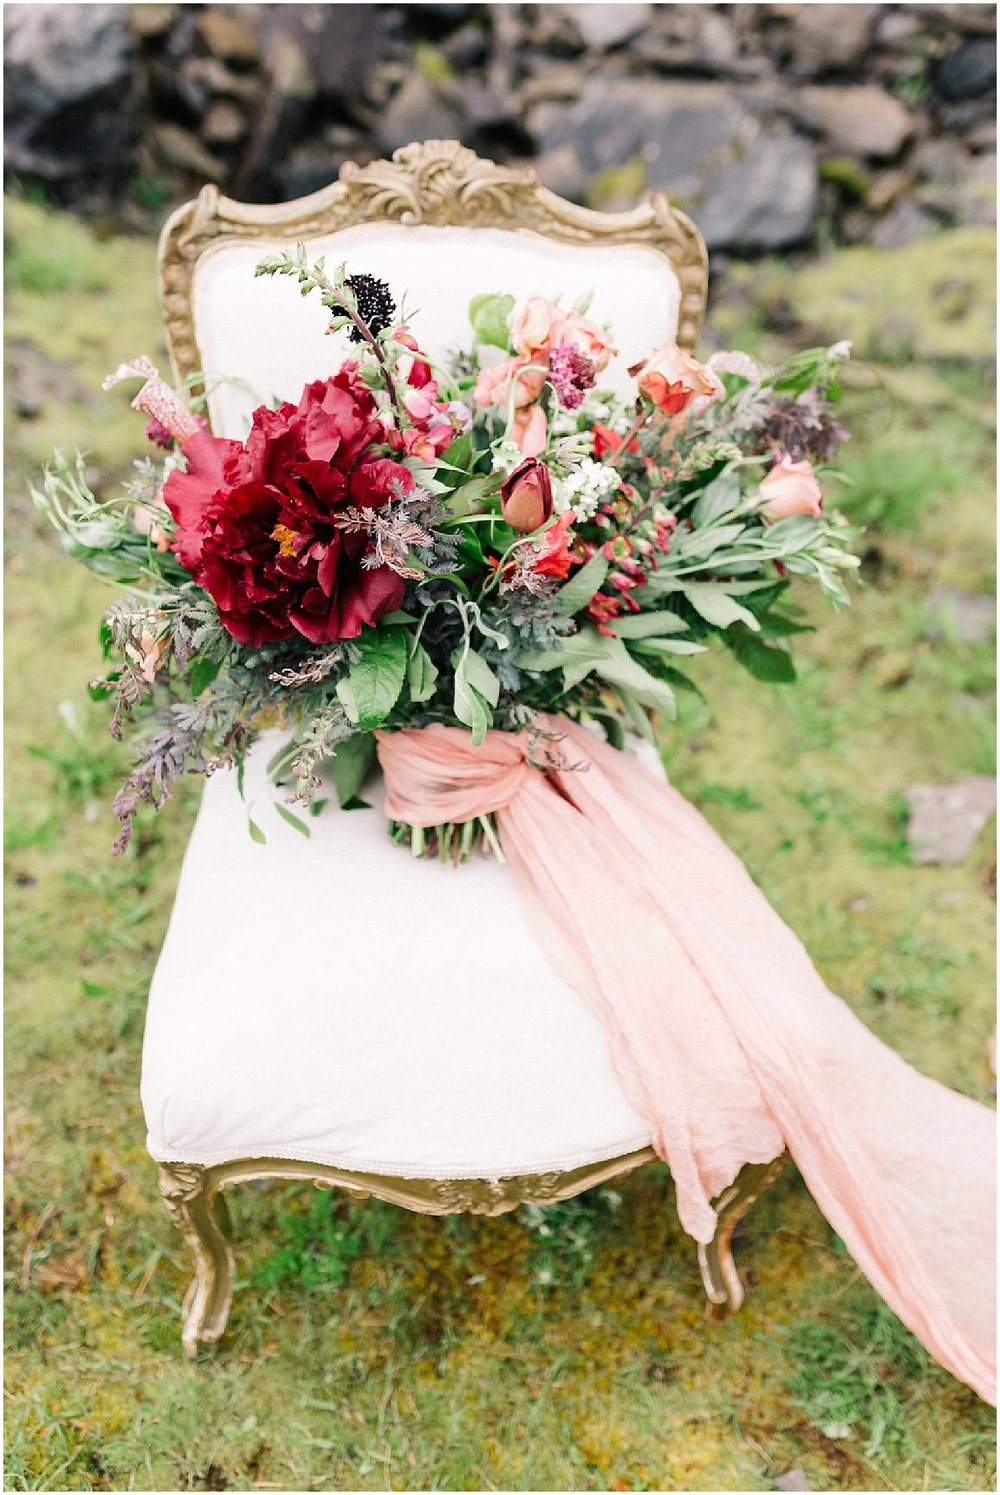 lush full bridal bouquet on the chair